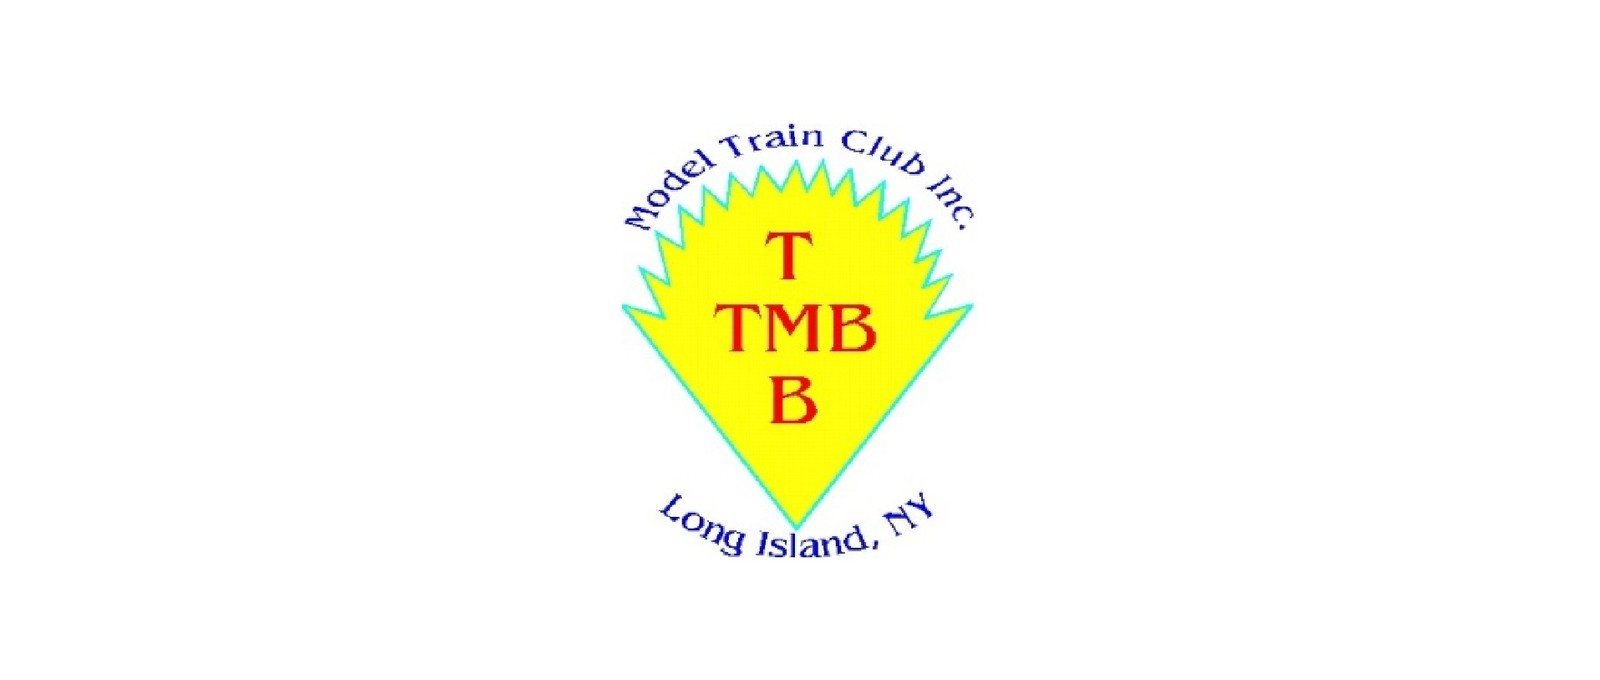 Tmb Model Train Club Lionel Wiring Block Signal Ambassador And Home To 81 Members Is Located In Famingdale Ny